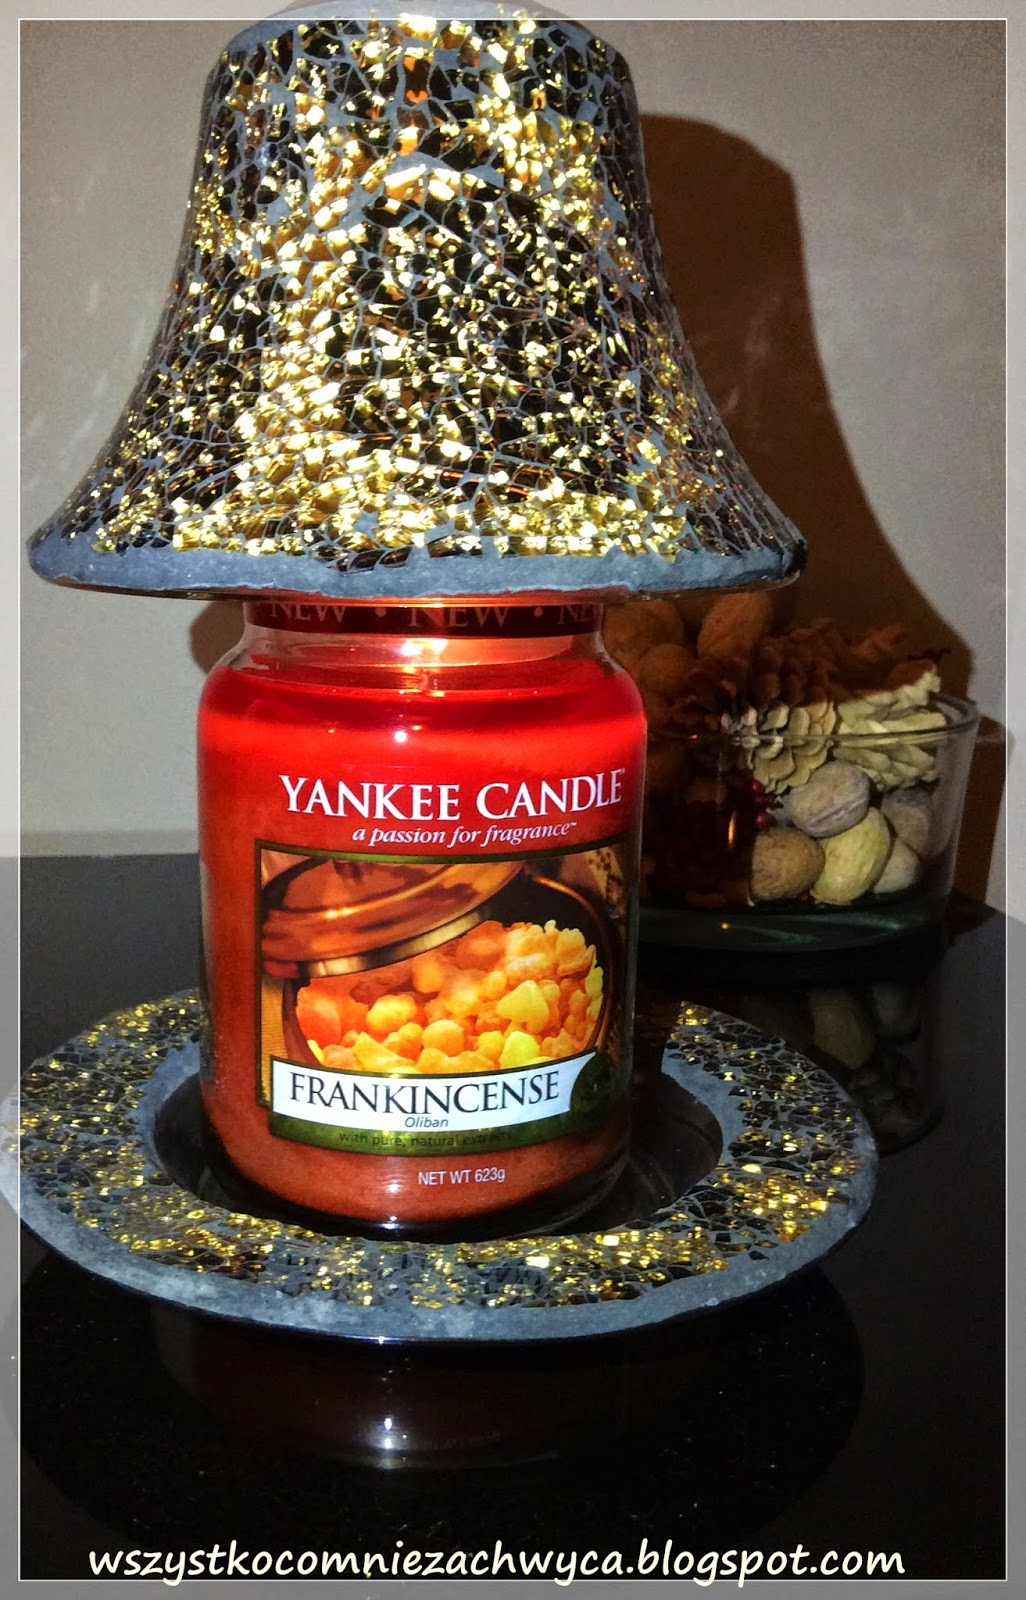 Yankee Candle, Grand Bazaar, Frankincense